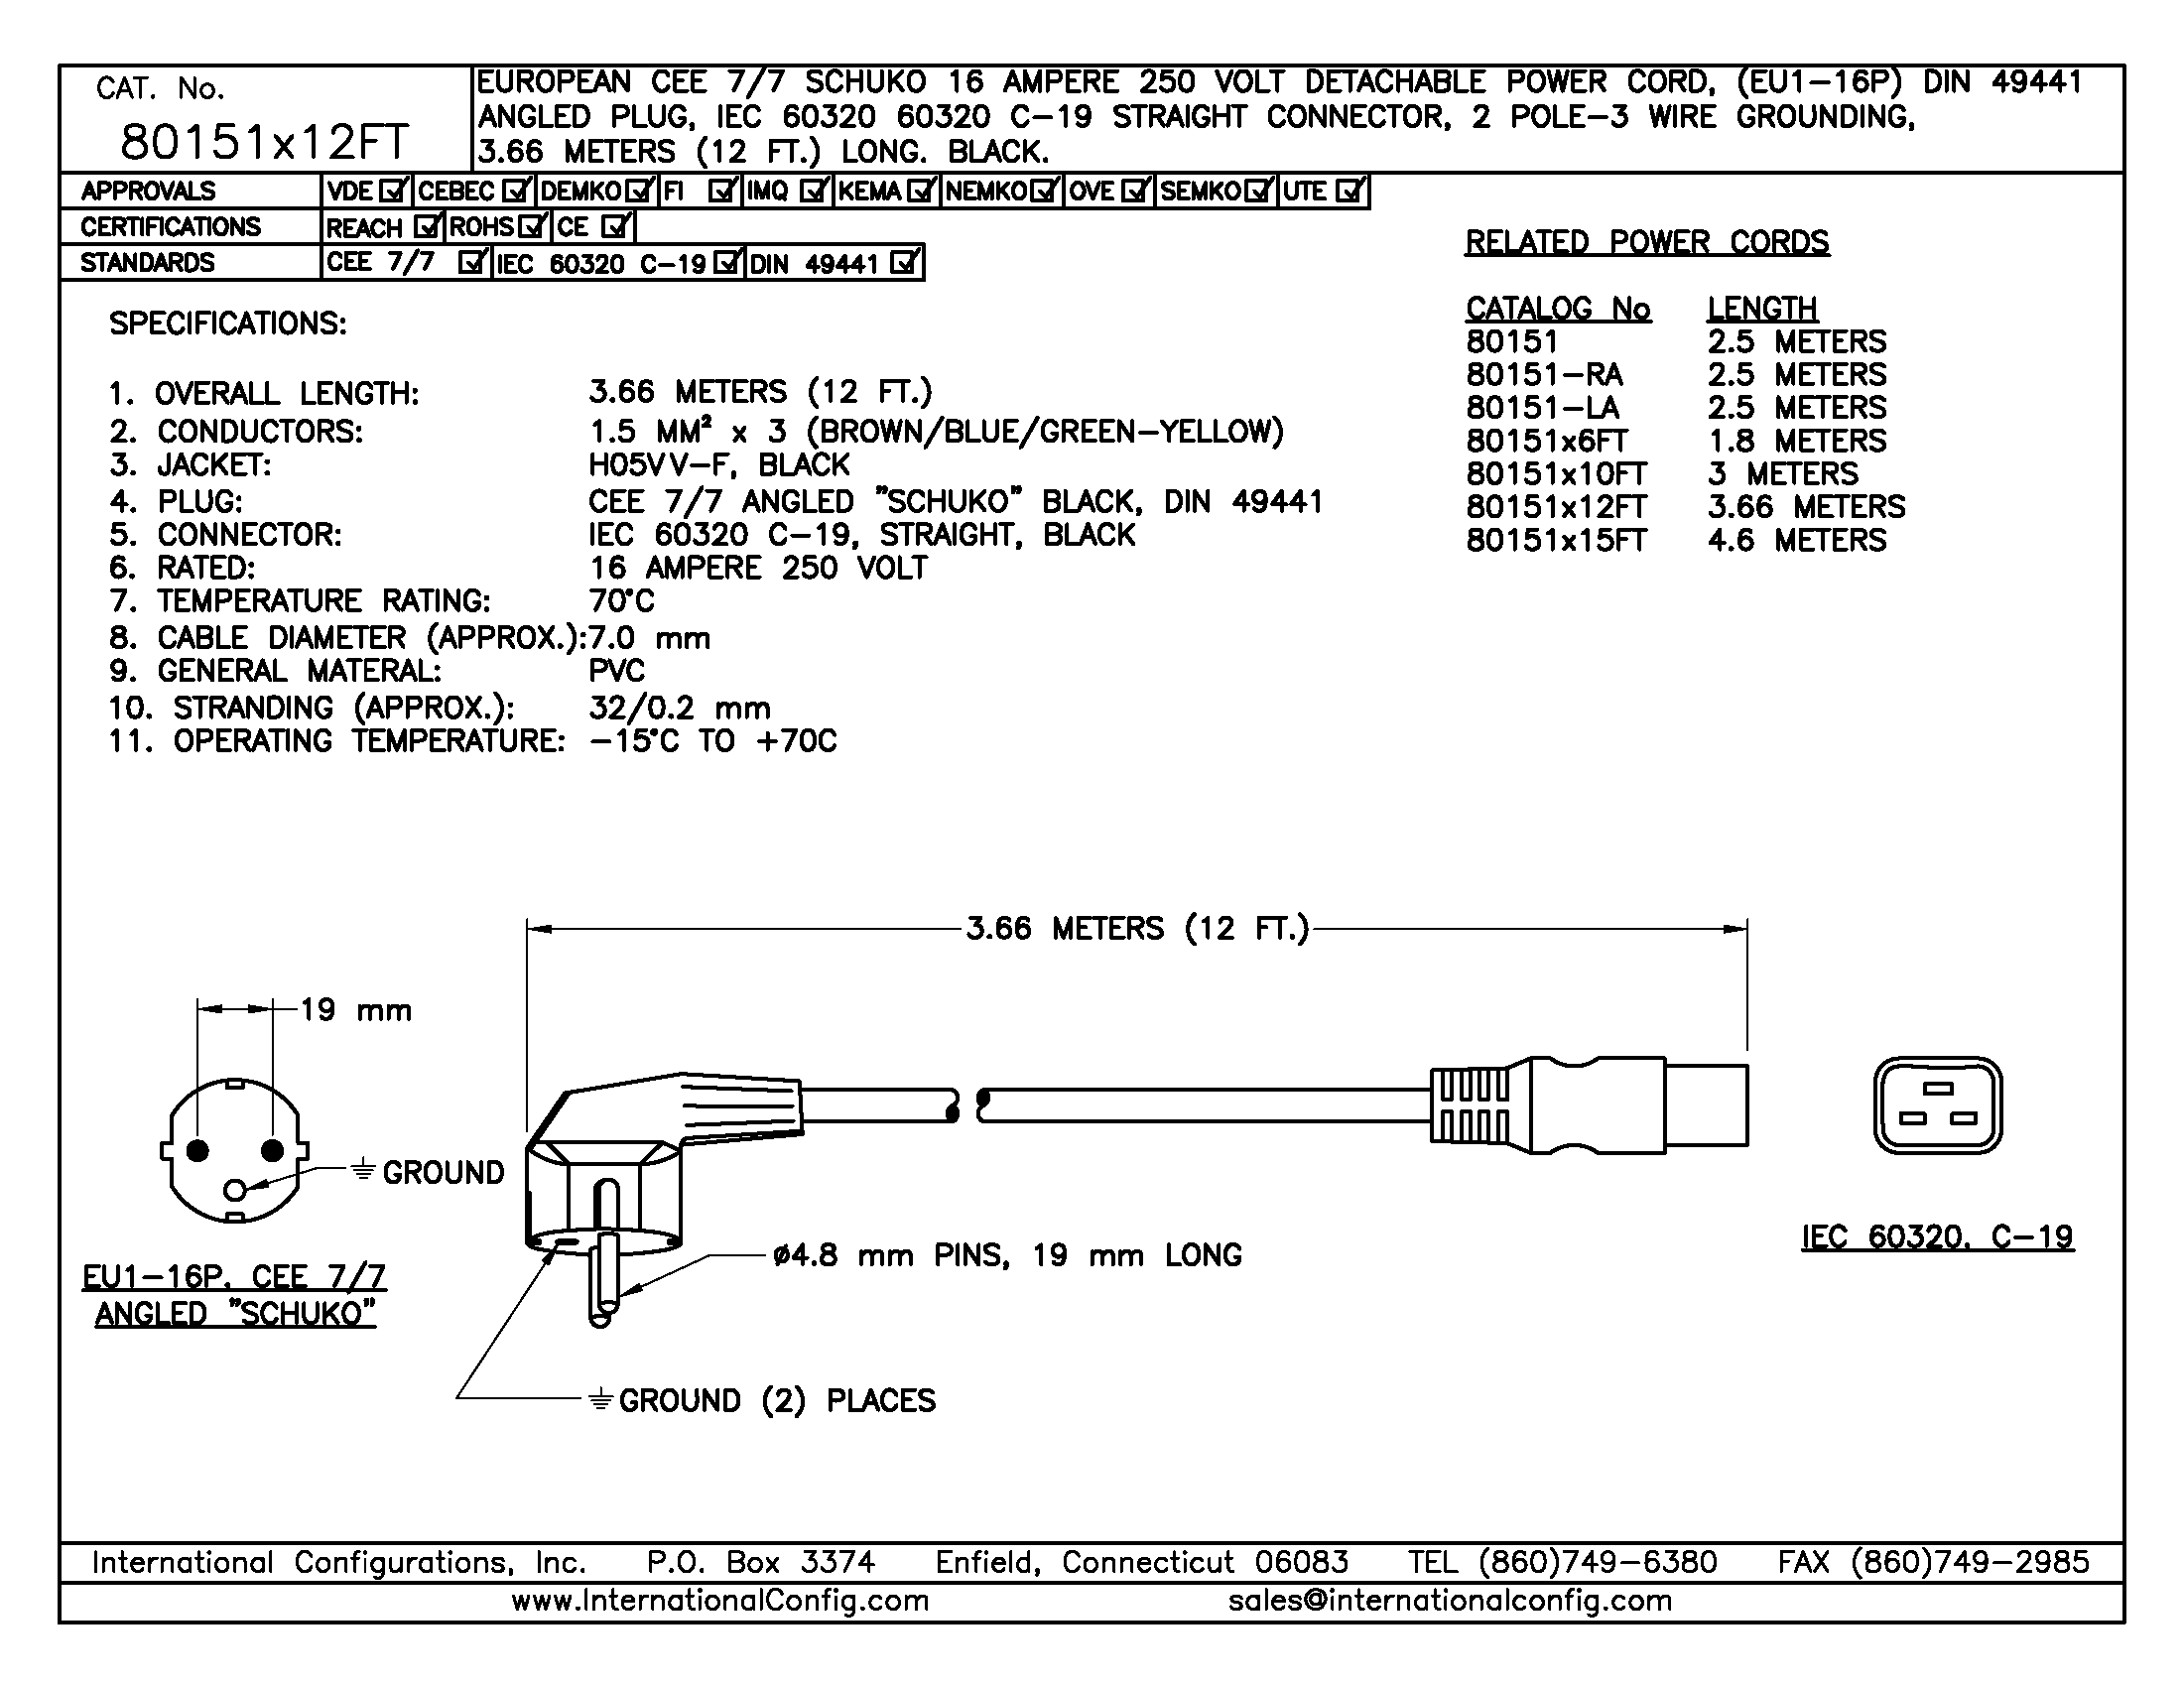 2 pole 3 wire grounding diagram 2007 ford focus radio wiring 80151x12ft straight c 19 connector international cord set